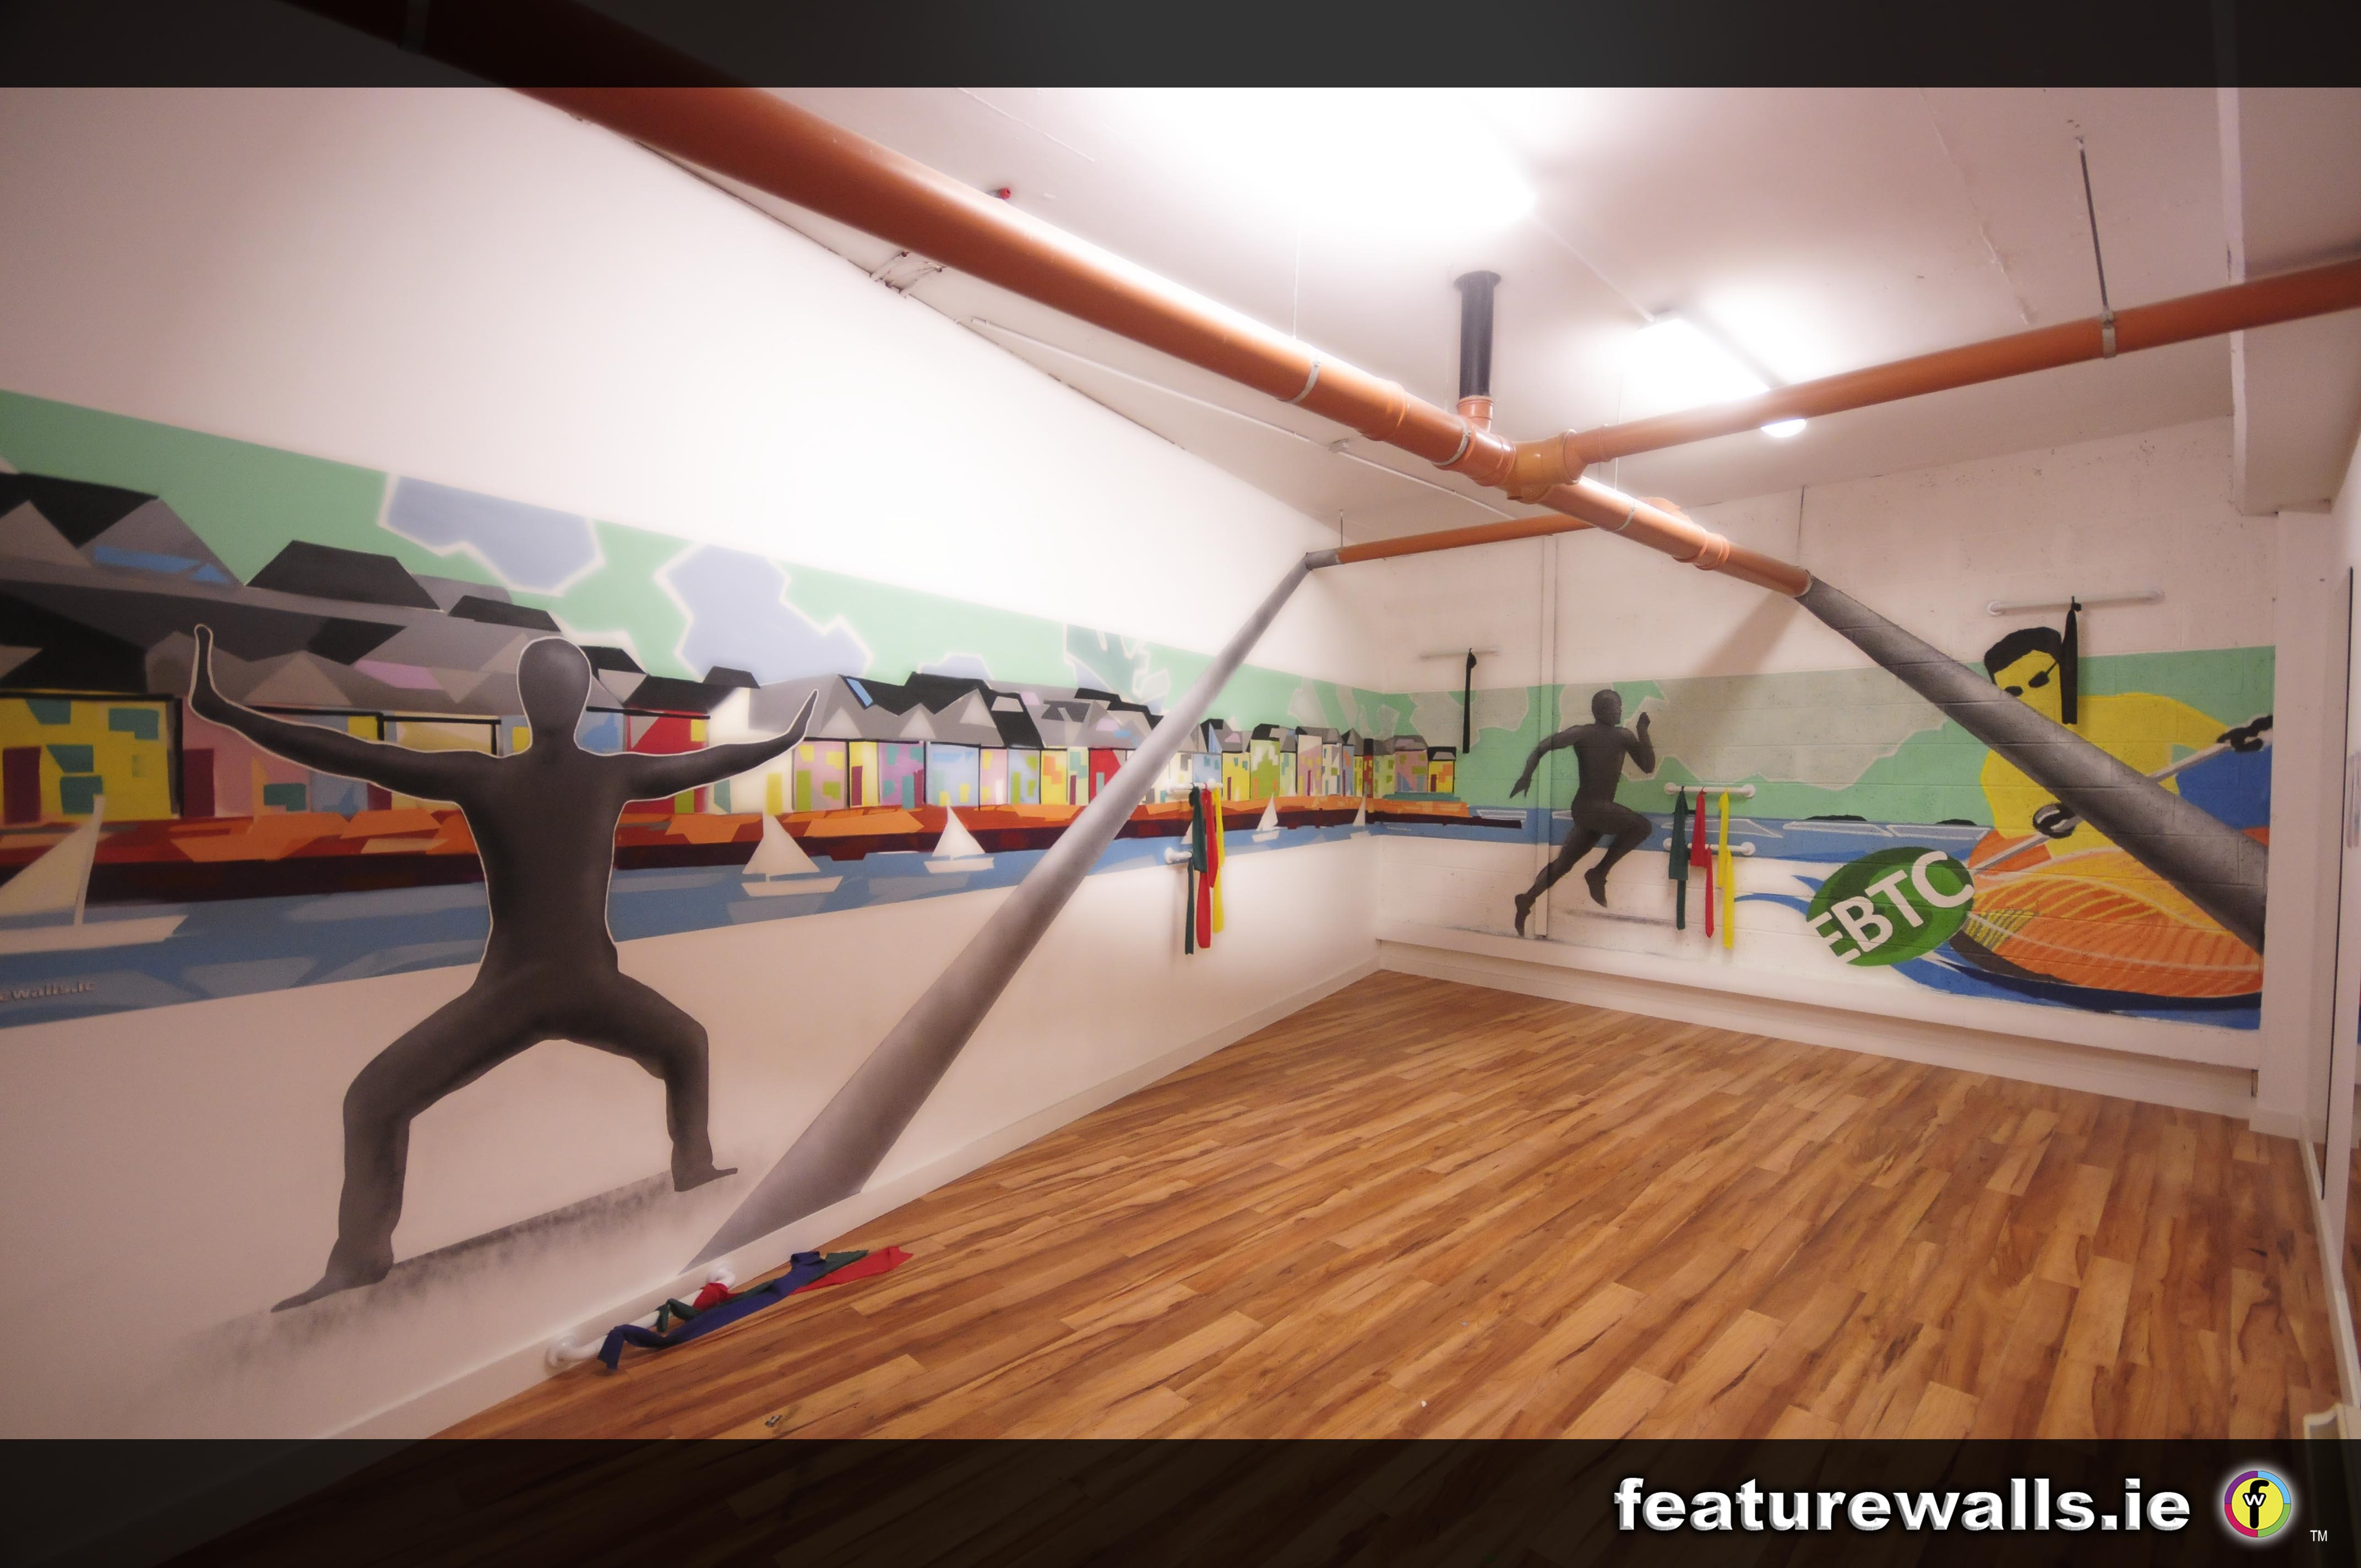 ebtc-therapy-room-mural-hand-painted-by-featurewalls-ie-jpg